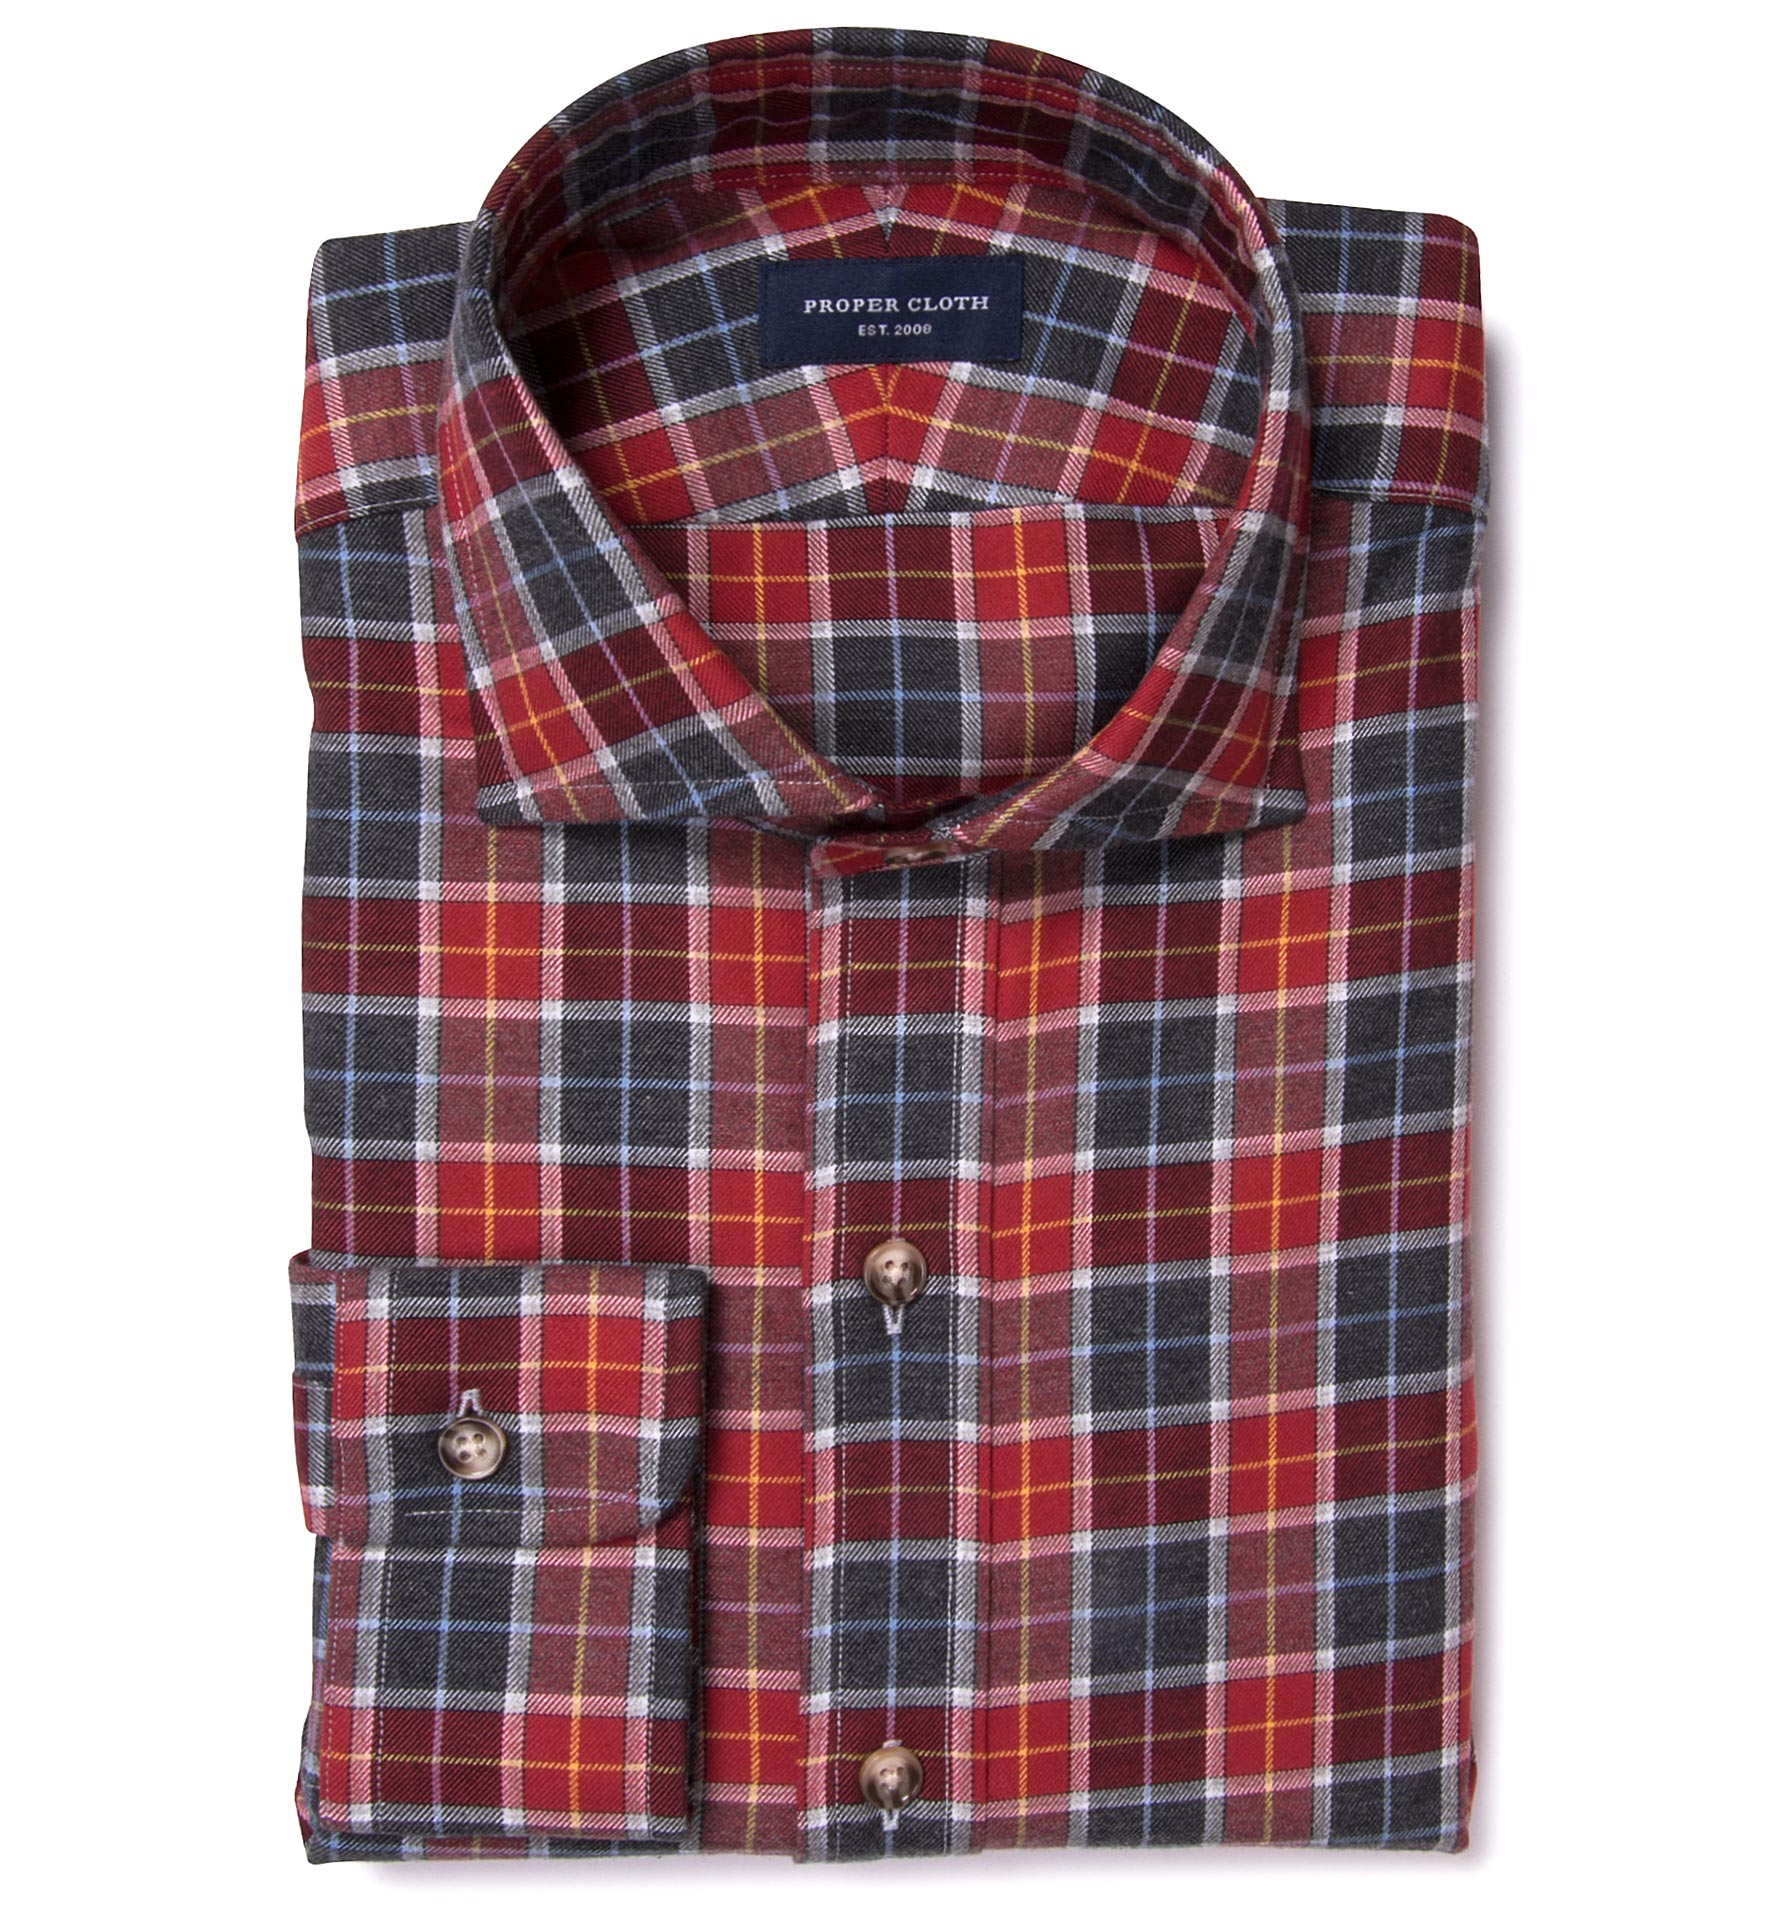 Rust dock street flannel custom dress shirt by proper cloth for Proper cloth custom shirt price